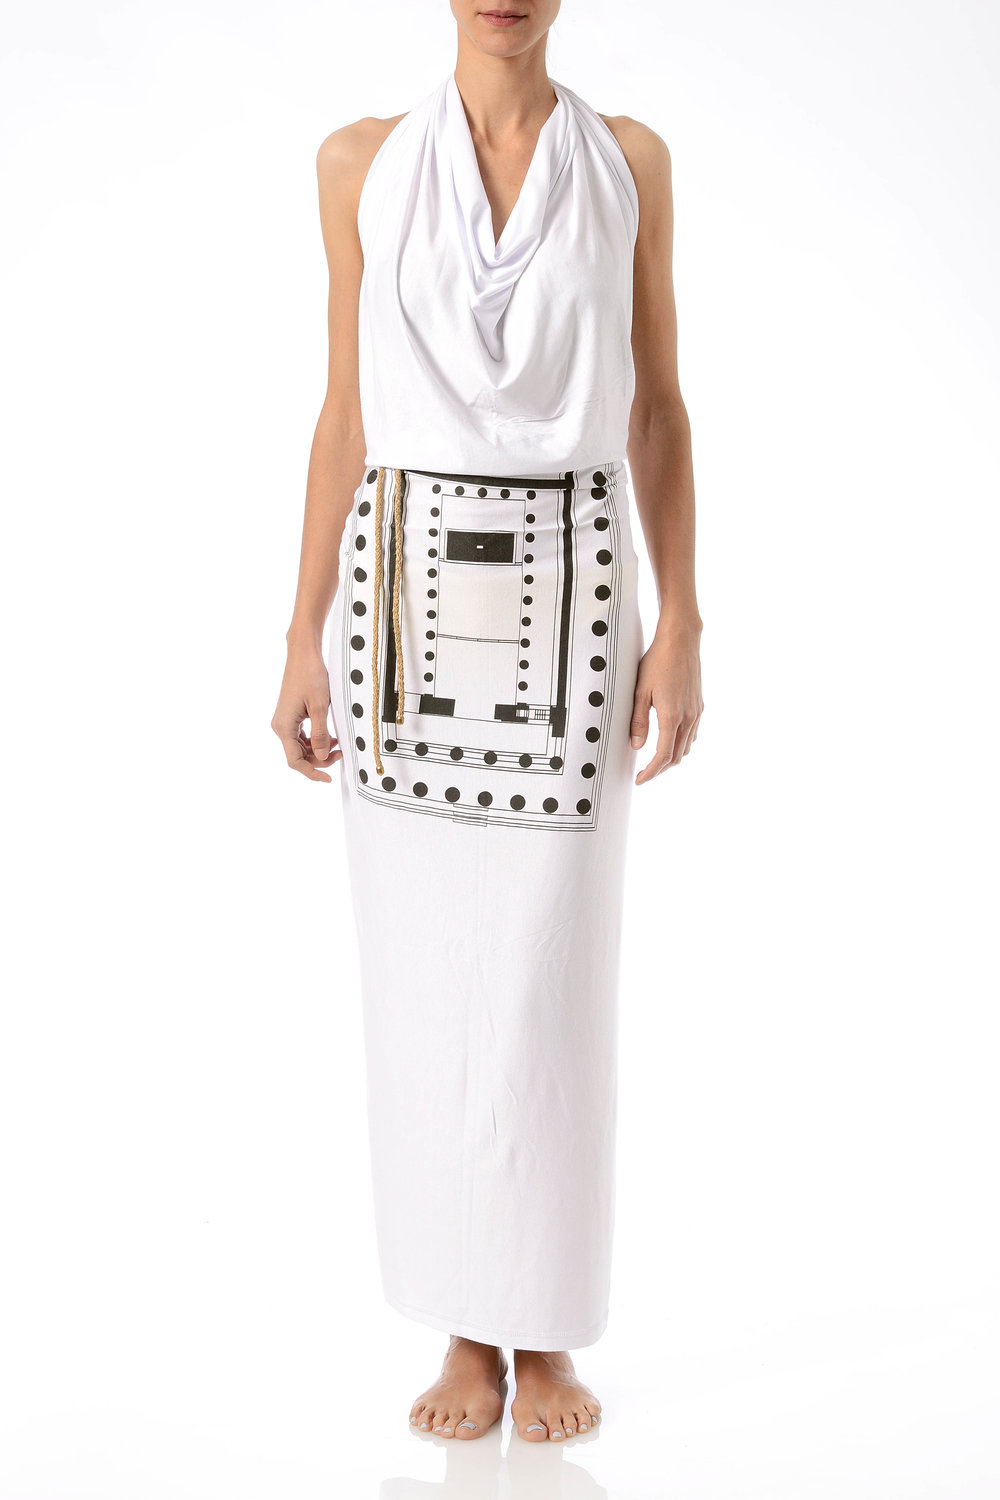 parthenon-white-viscose-long-dress-wraped-on-back.jpg